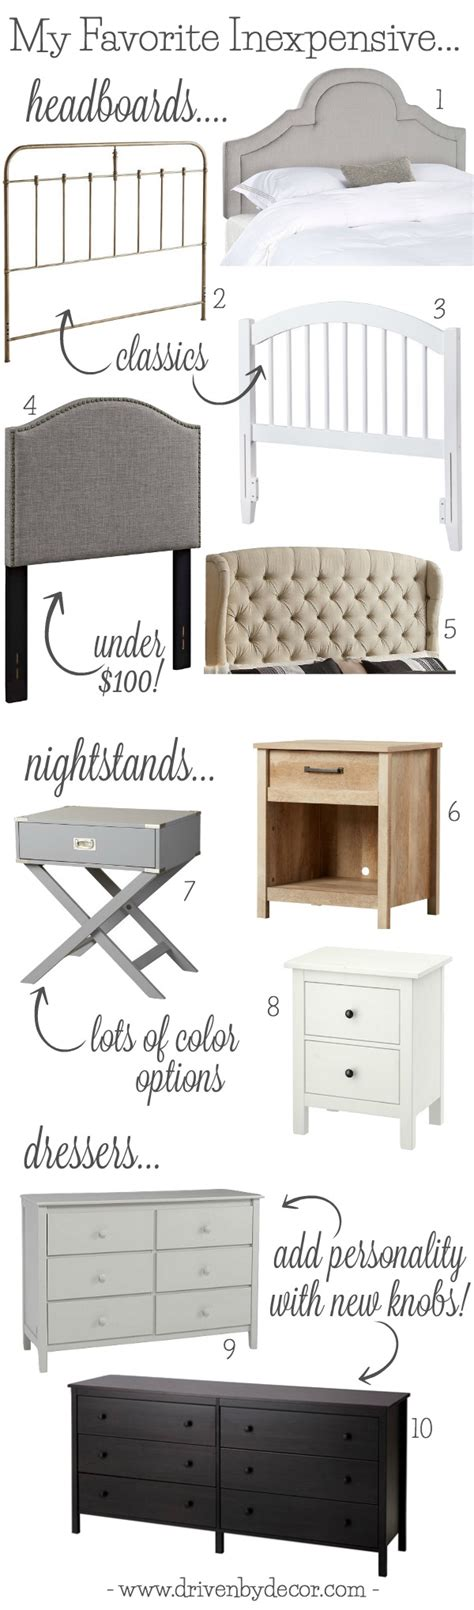 inexpensive bedroom dressers the best inexpensive headboards nightstands dressers